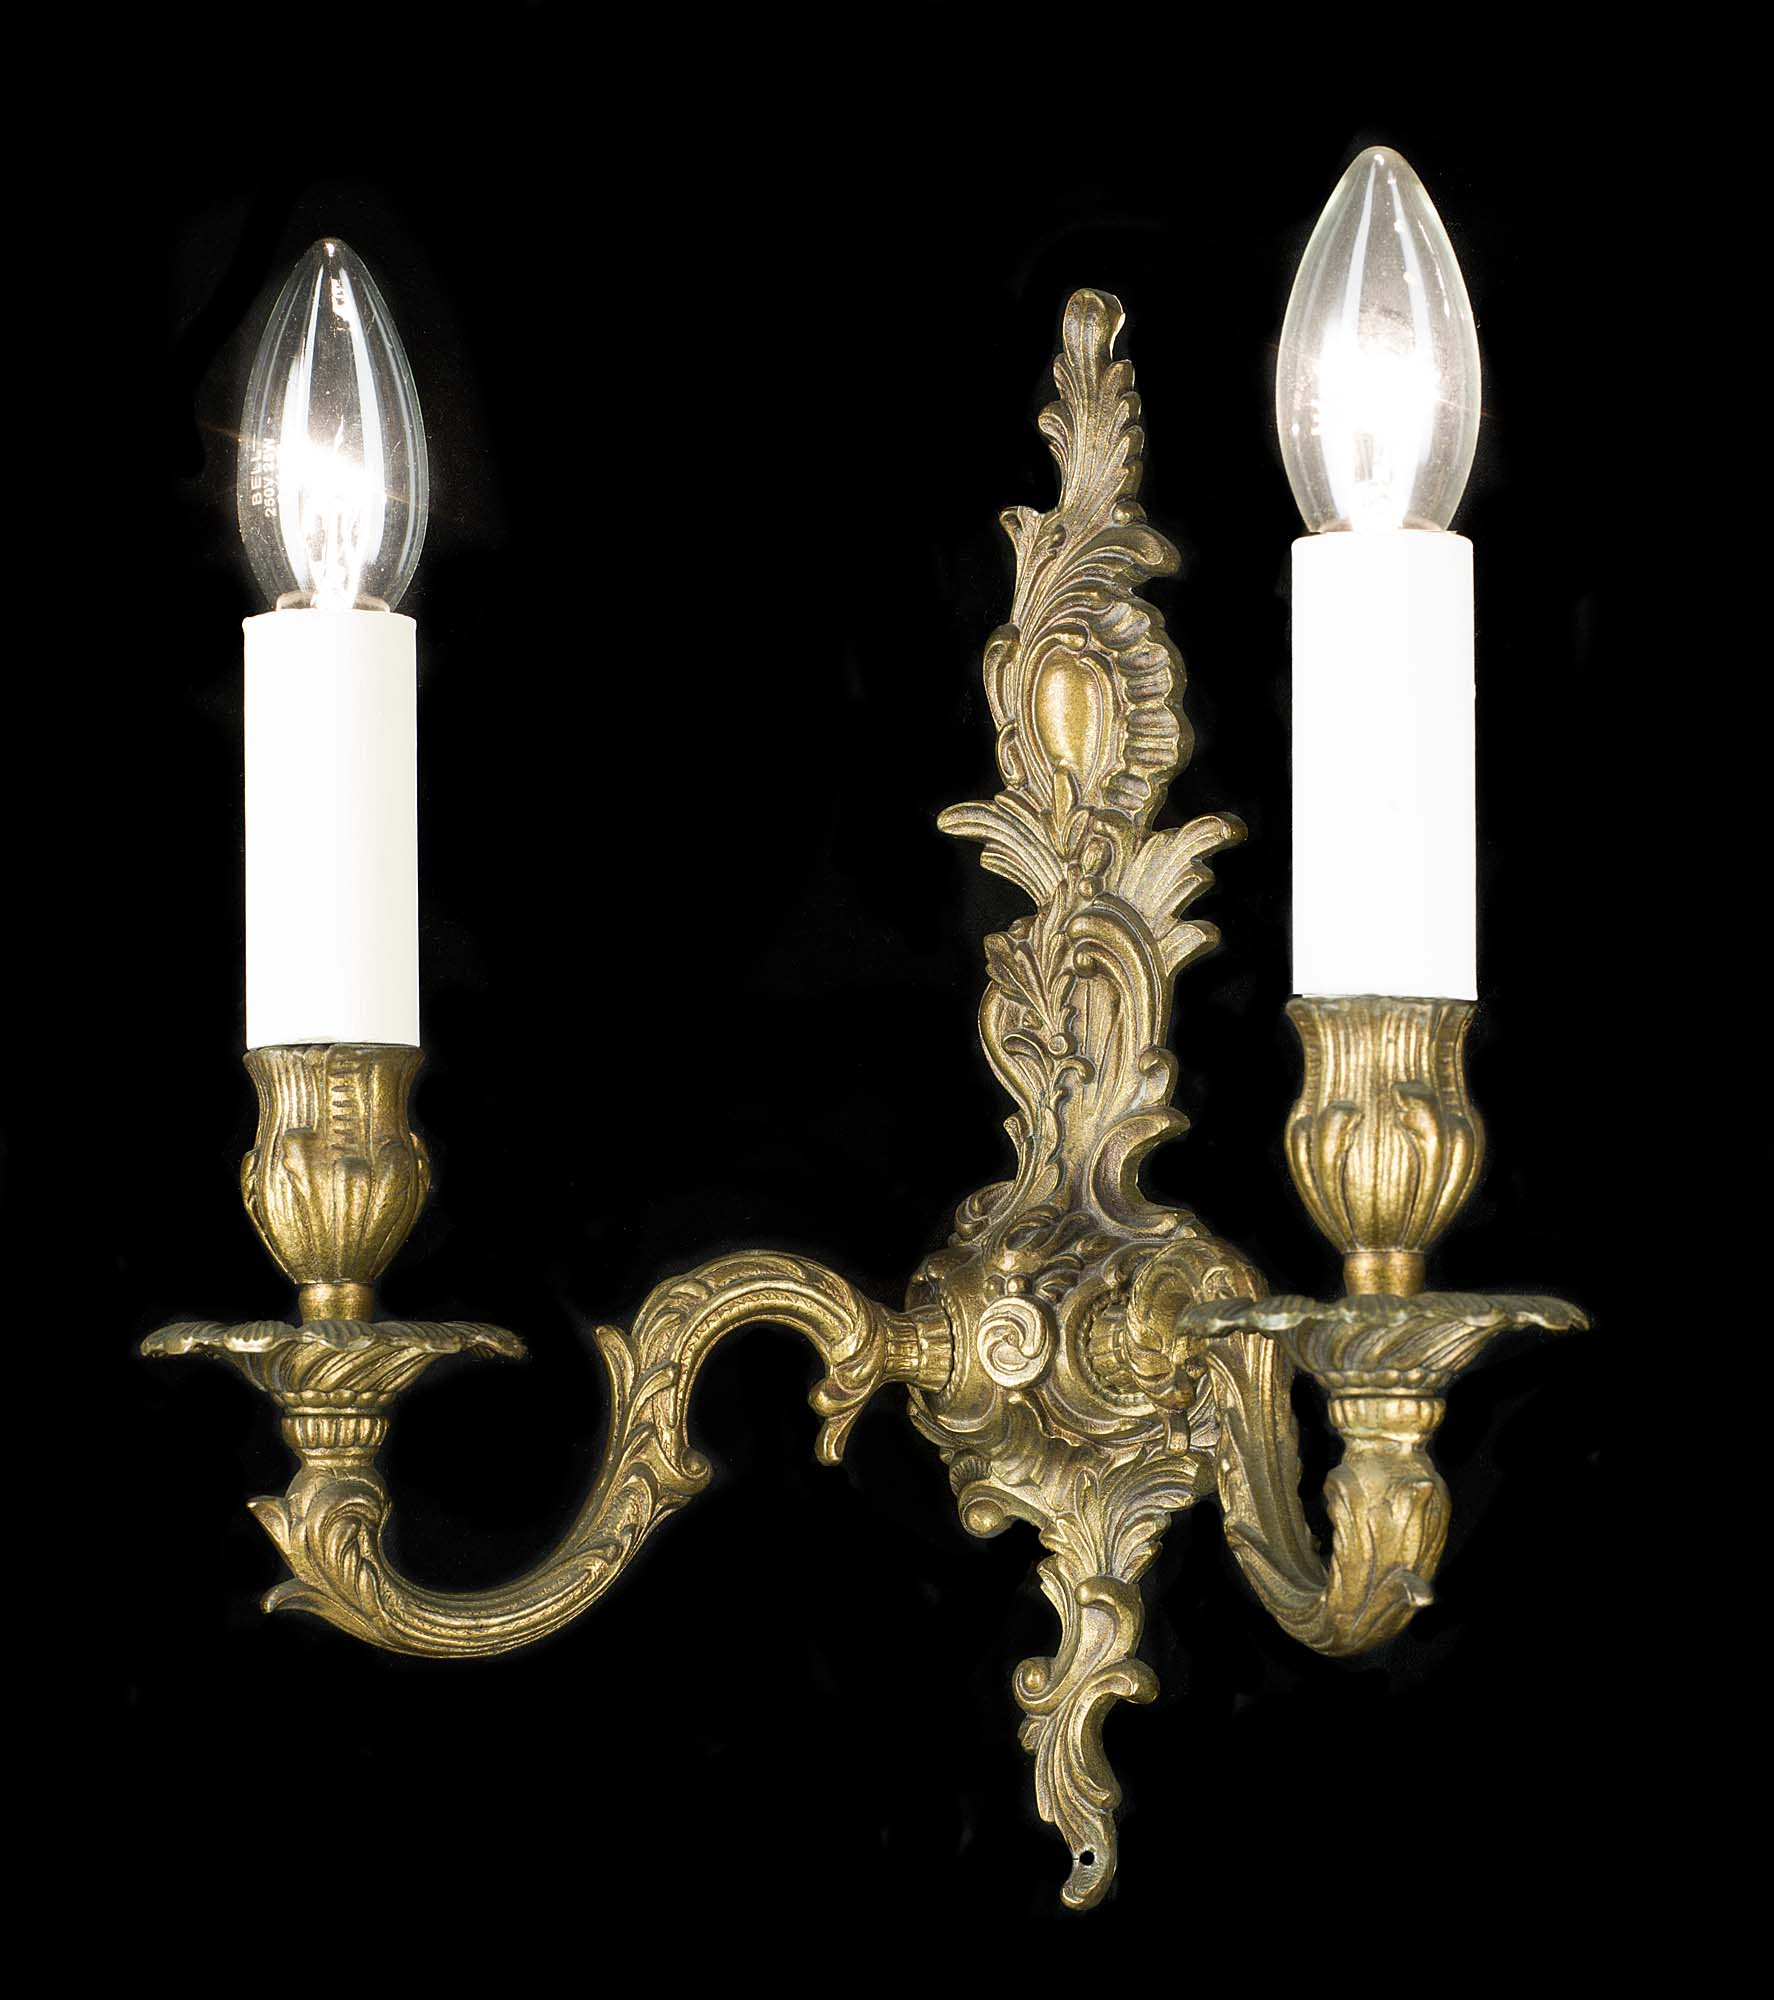 20th century pair of French brass wall lights